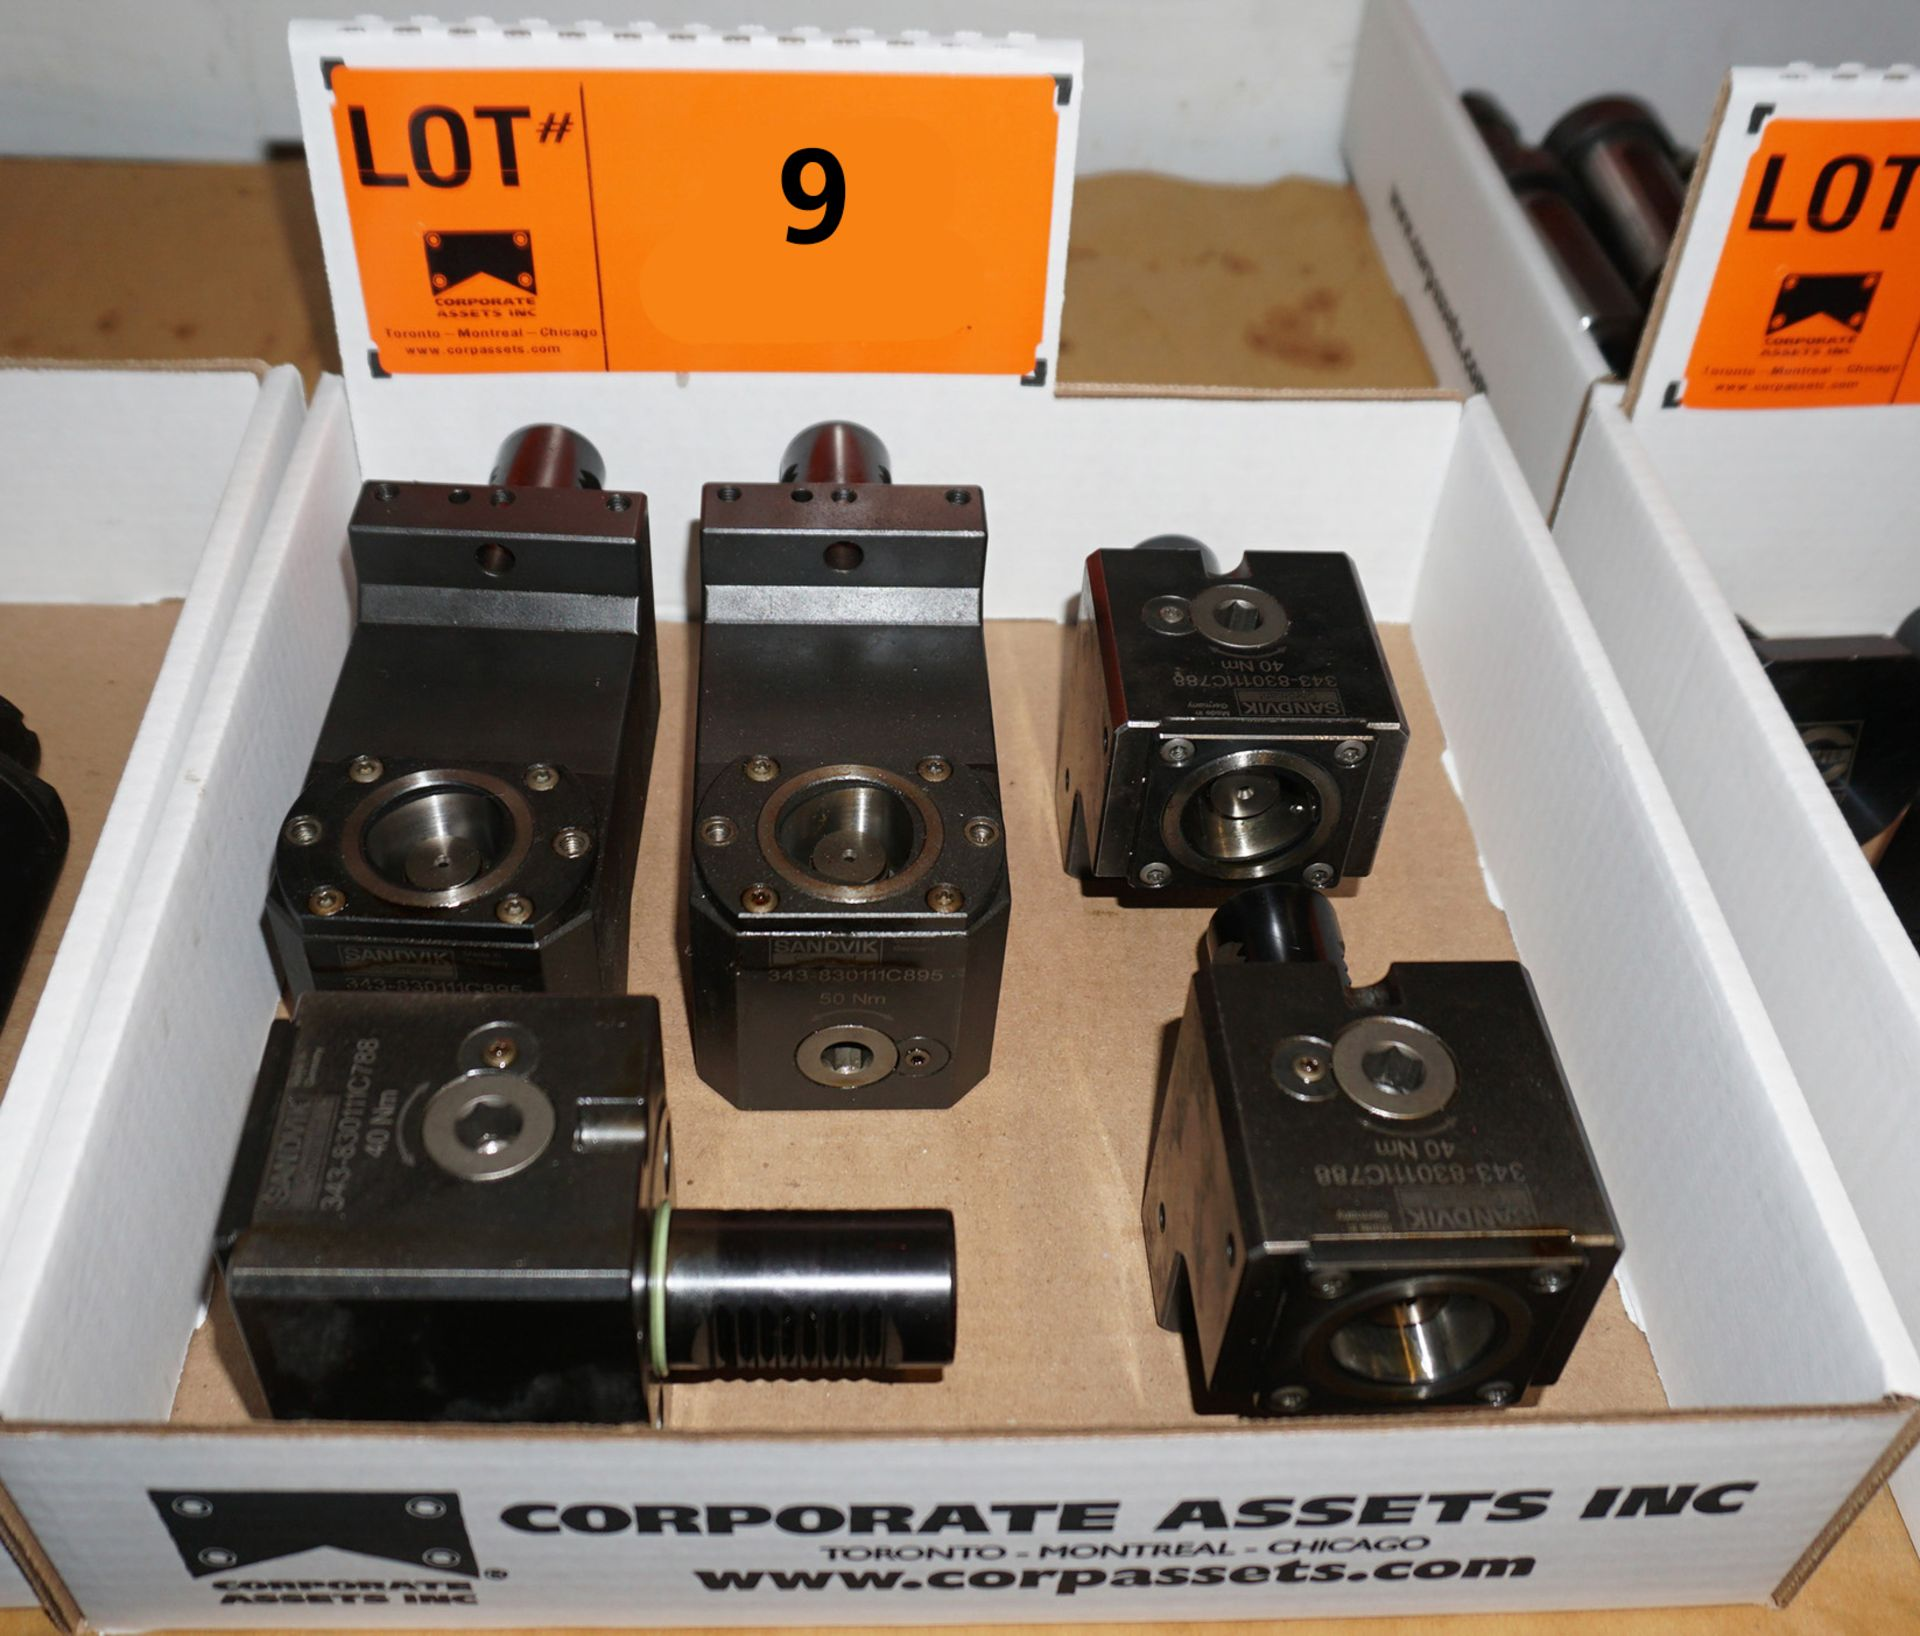 Lot 9 - LOT/ (2) SANDVIK 343-830111C895 90 DEGREE STATIC TOOL HOLDERS & (3) SANDVIK 343-830111C788 STATIC